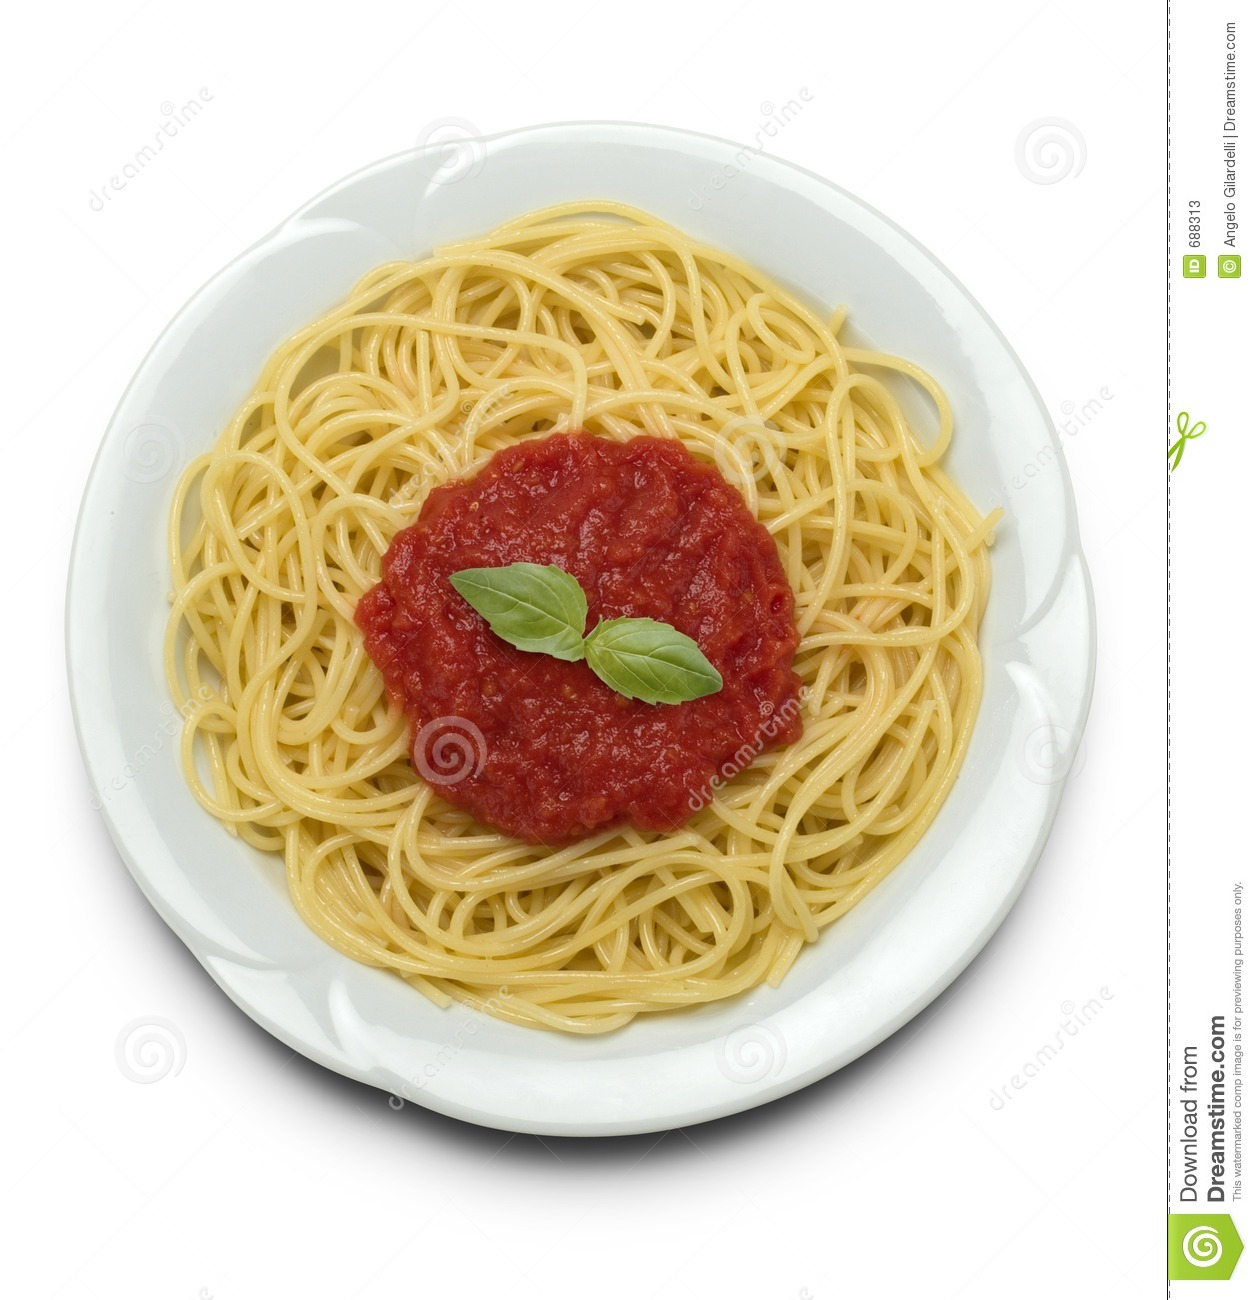 Spaghetti With Tomato Sauce Stock Photos - Image: 688313